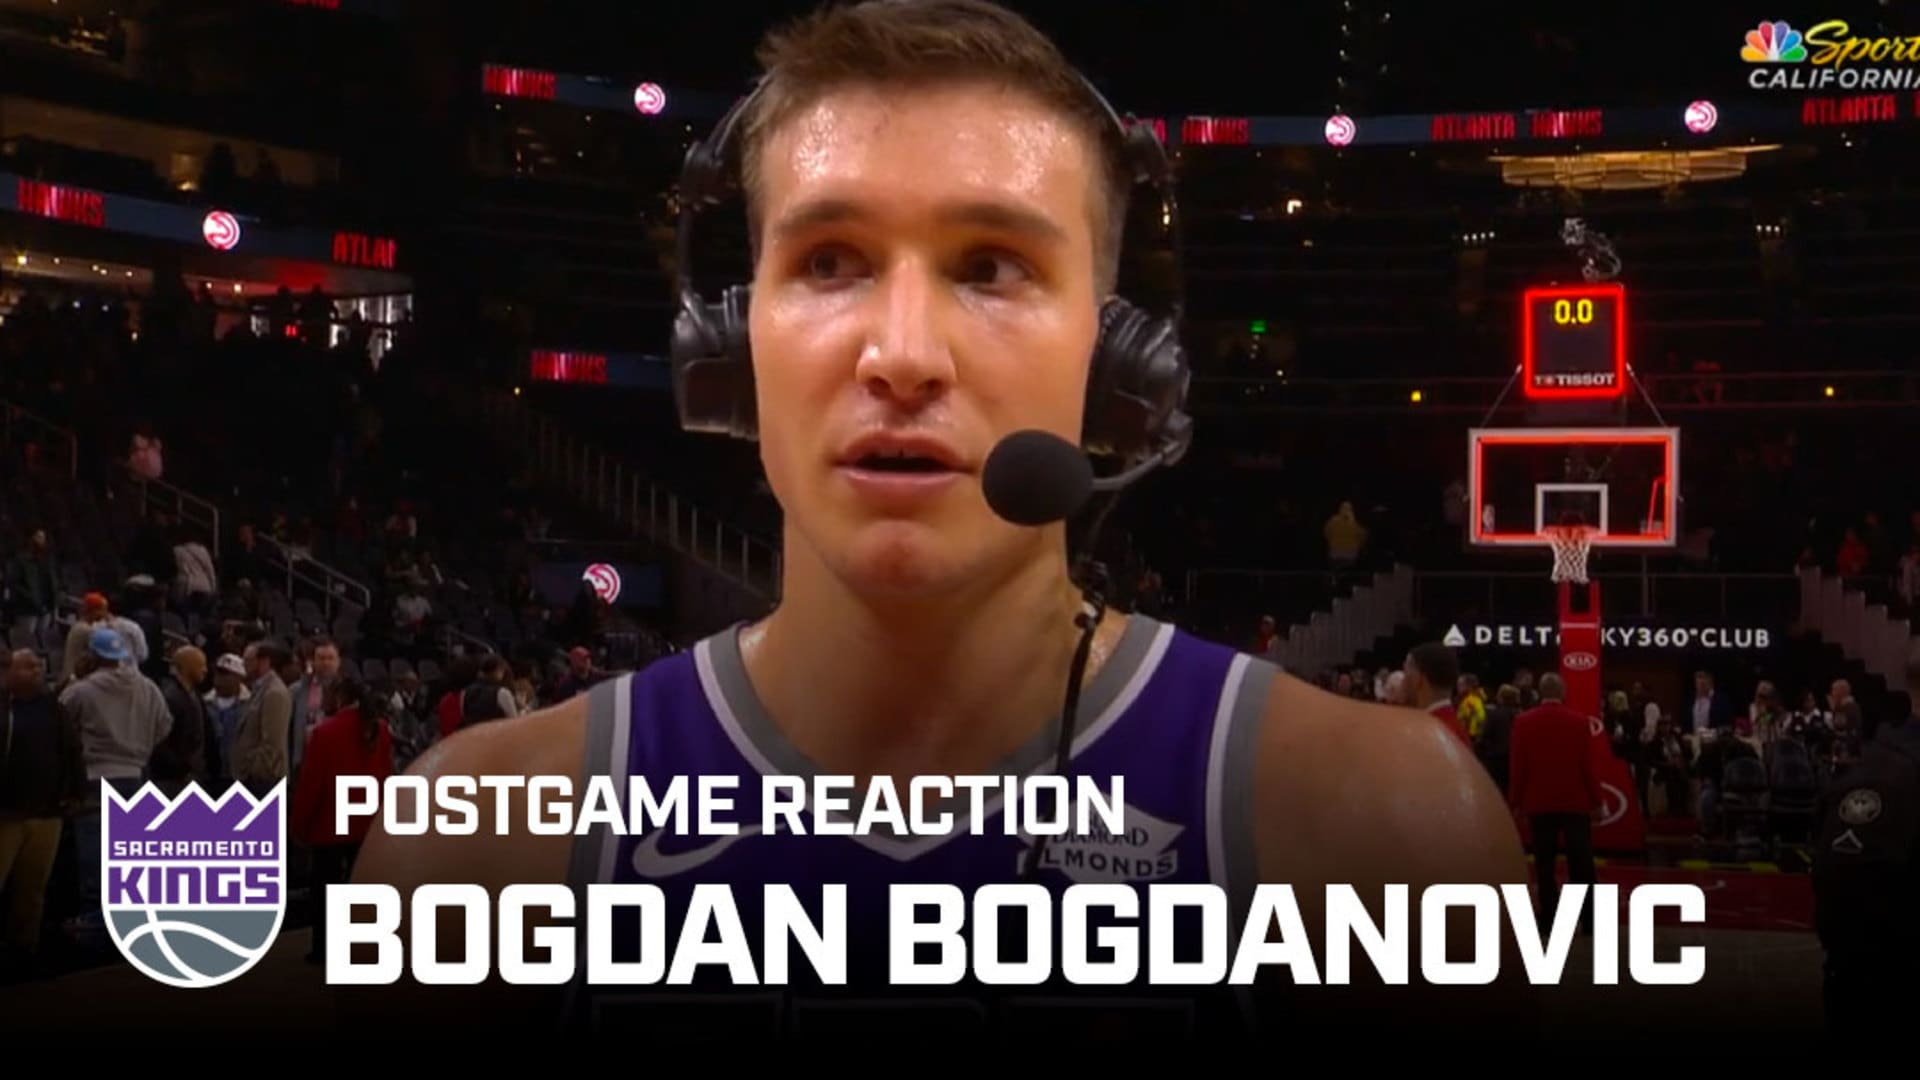 'We Just Have to Be Ready to Play' | Bogdan Bogdanovic Postgame Reaction 11.3.19